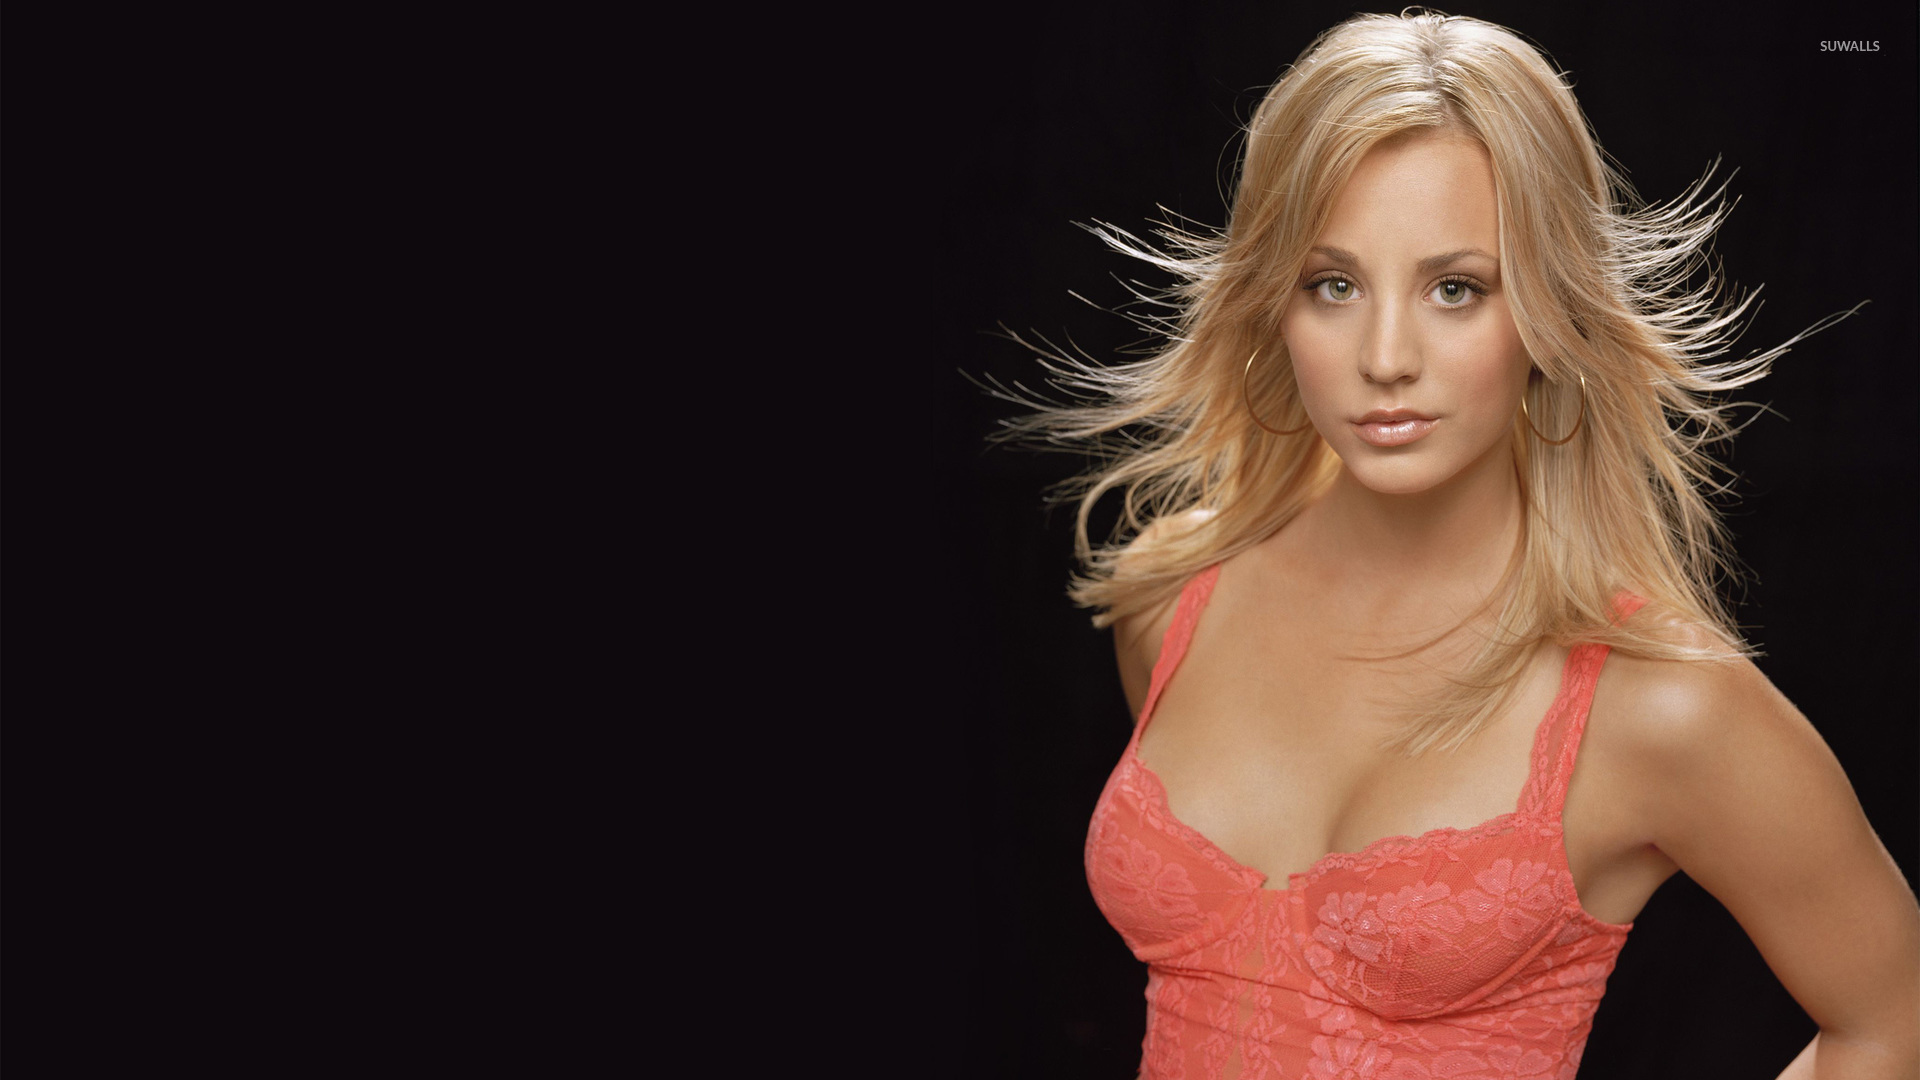 154 Kaley Cuoco HD Wallpapers | Background Images ...